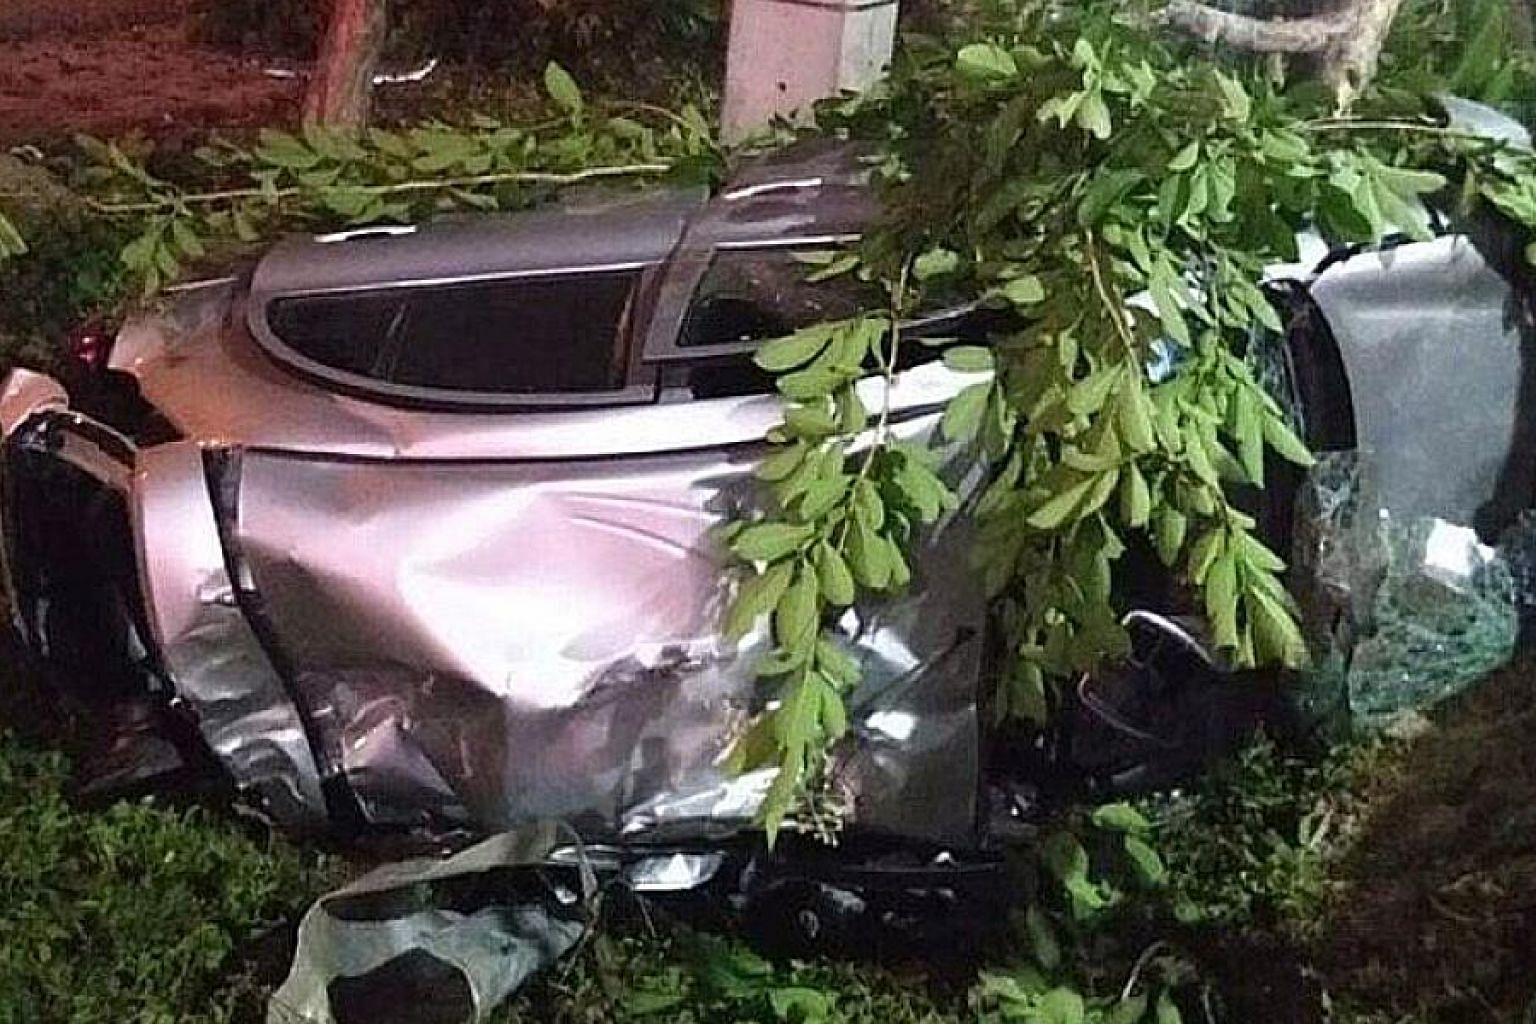 Mr Joshua Tan Xing Hao crashed his car into a tree last Saturday. His Thai companion was seriously injured.